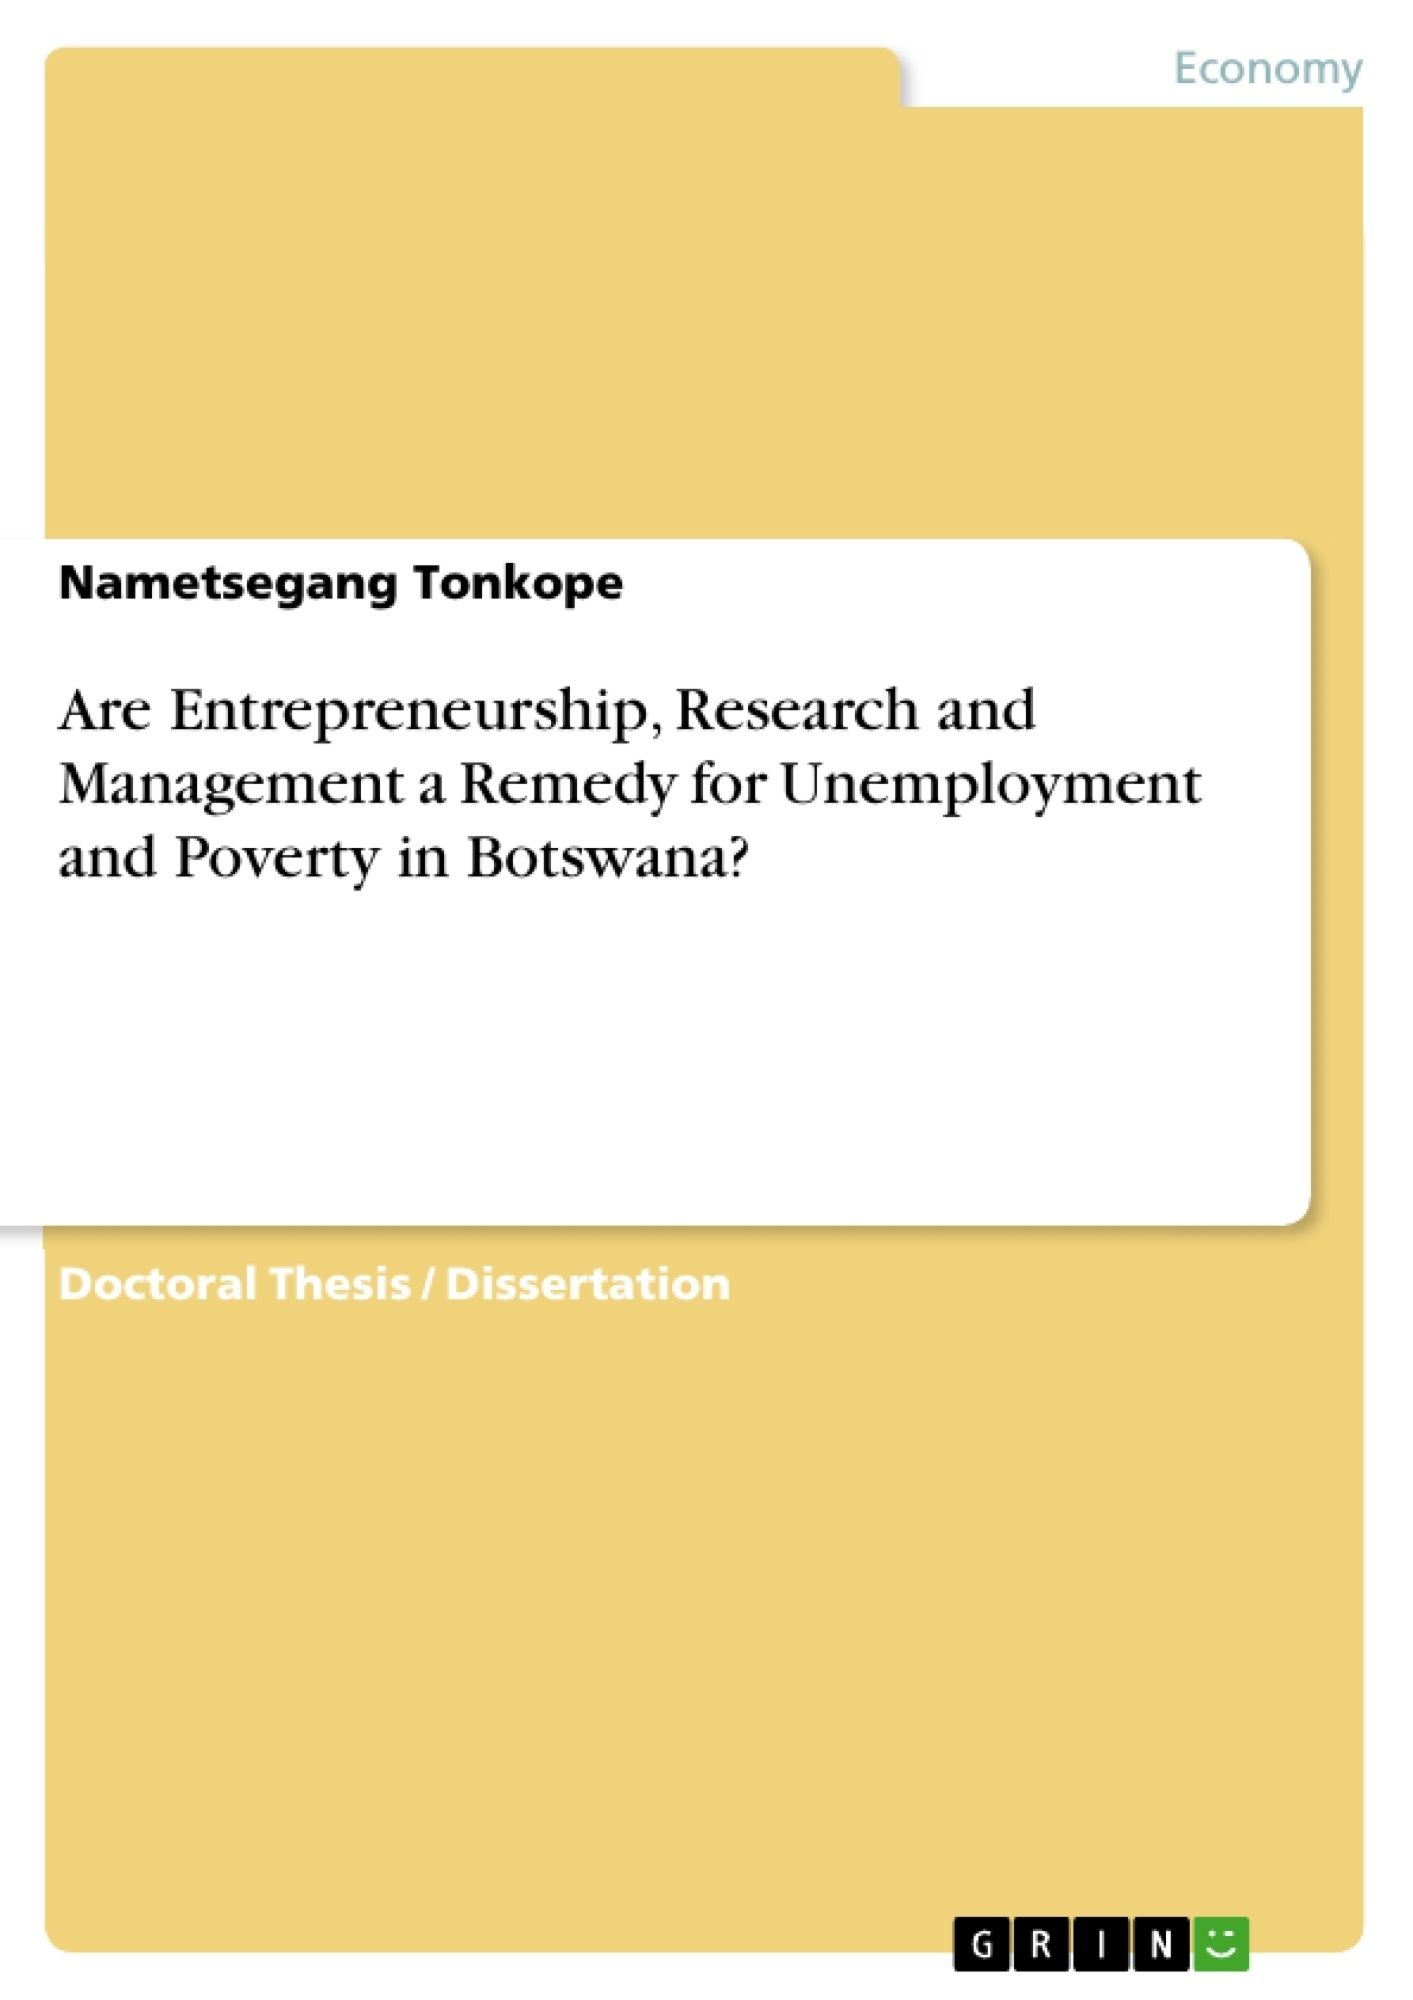 Title: Are Entrepreneurship, Research and Management a Remedy for Unemployment and Poverty in Botswana?